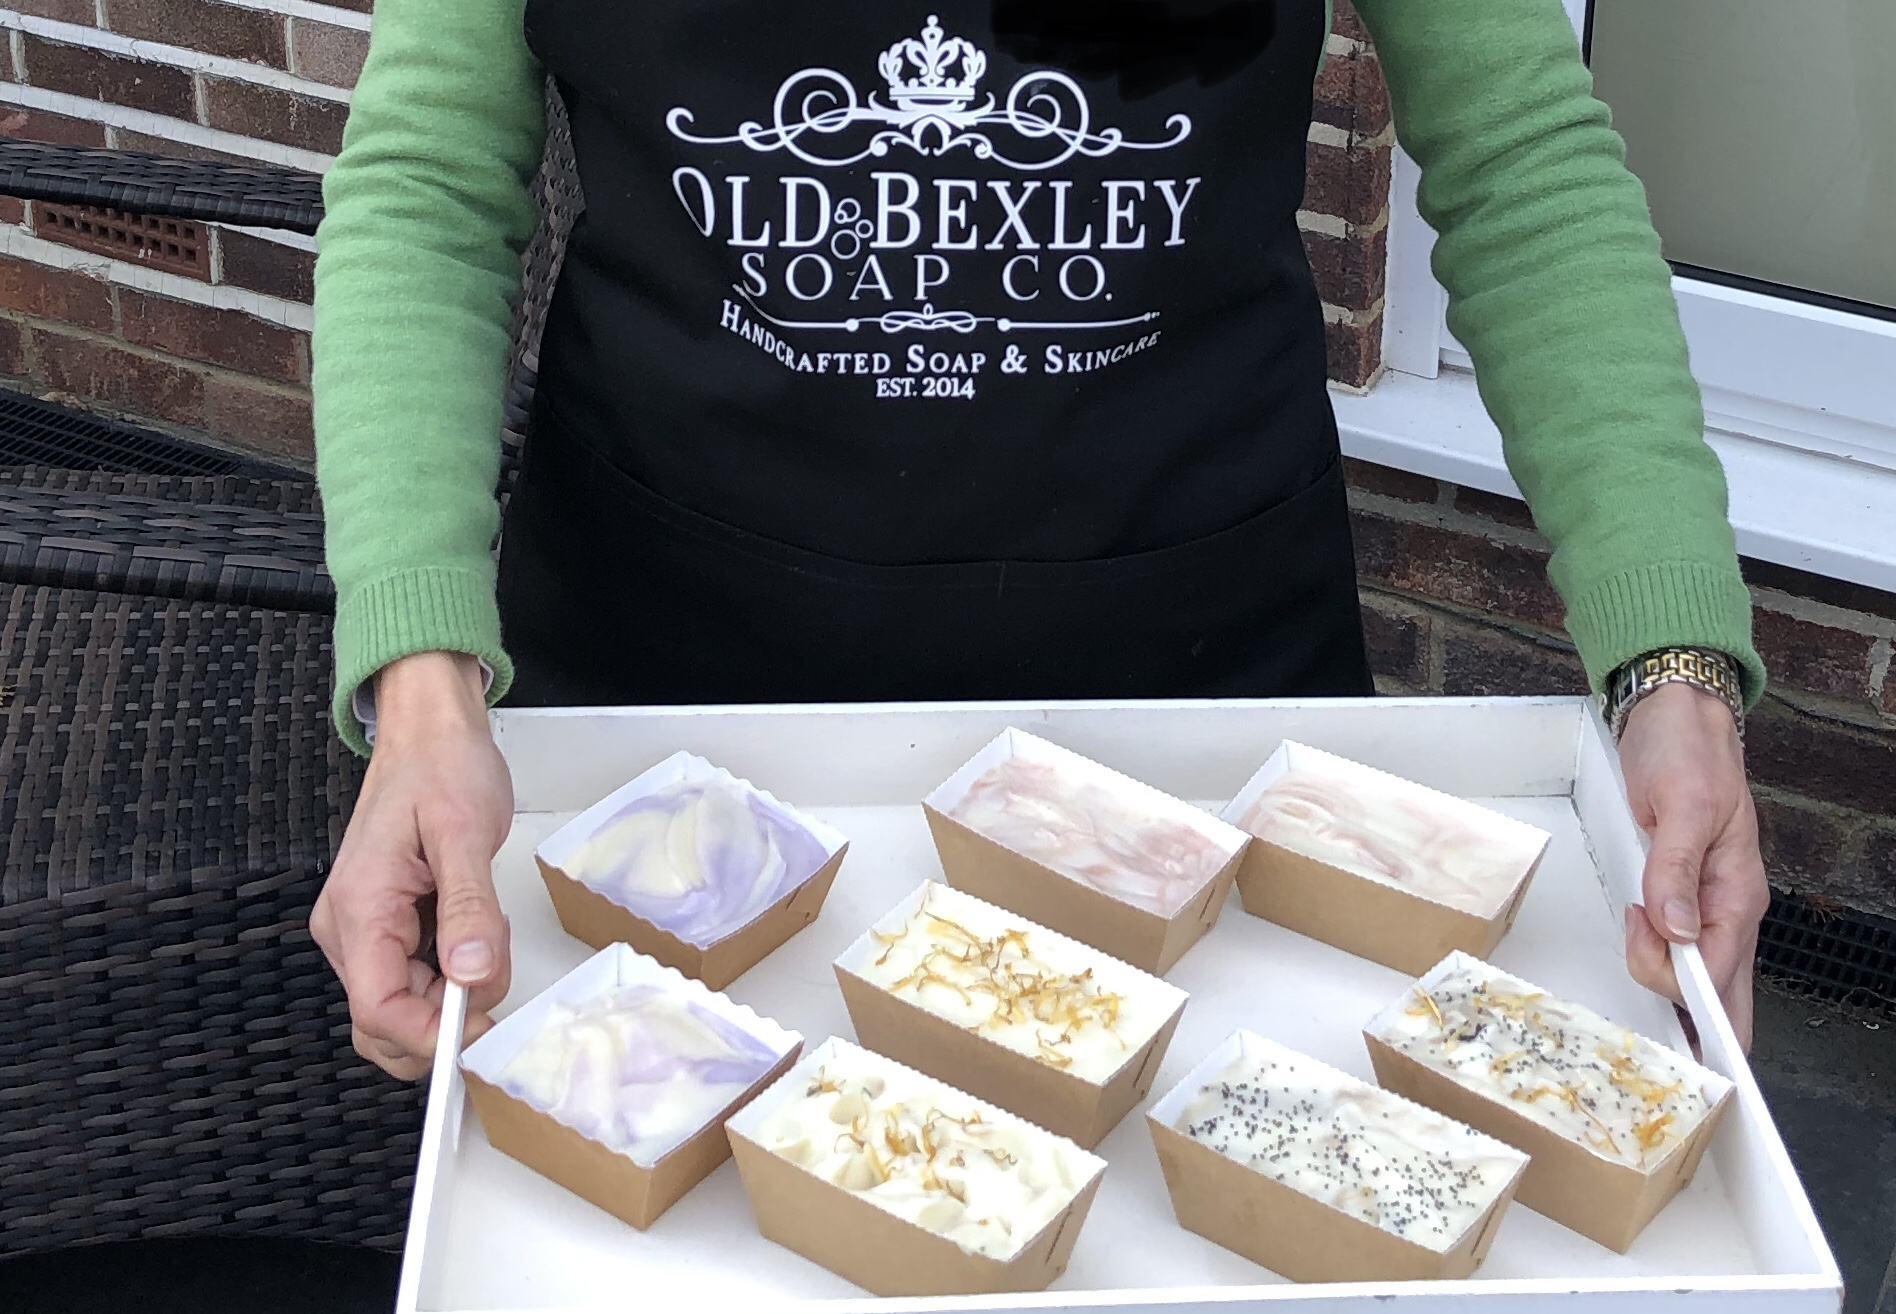 Beginners Candle Making Course with Afternoon Tea by Old Bexley Soap Co. - crafts in London